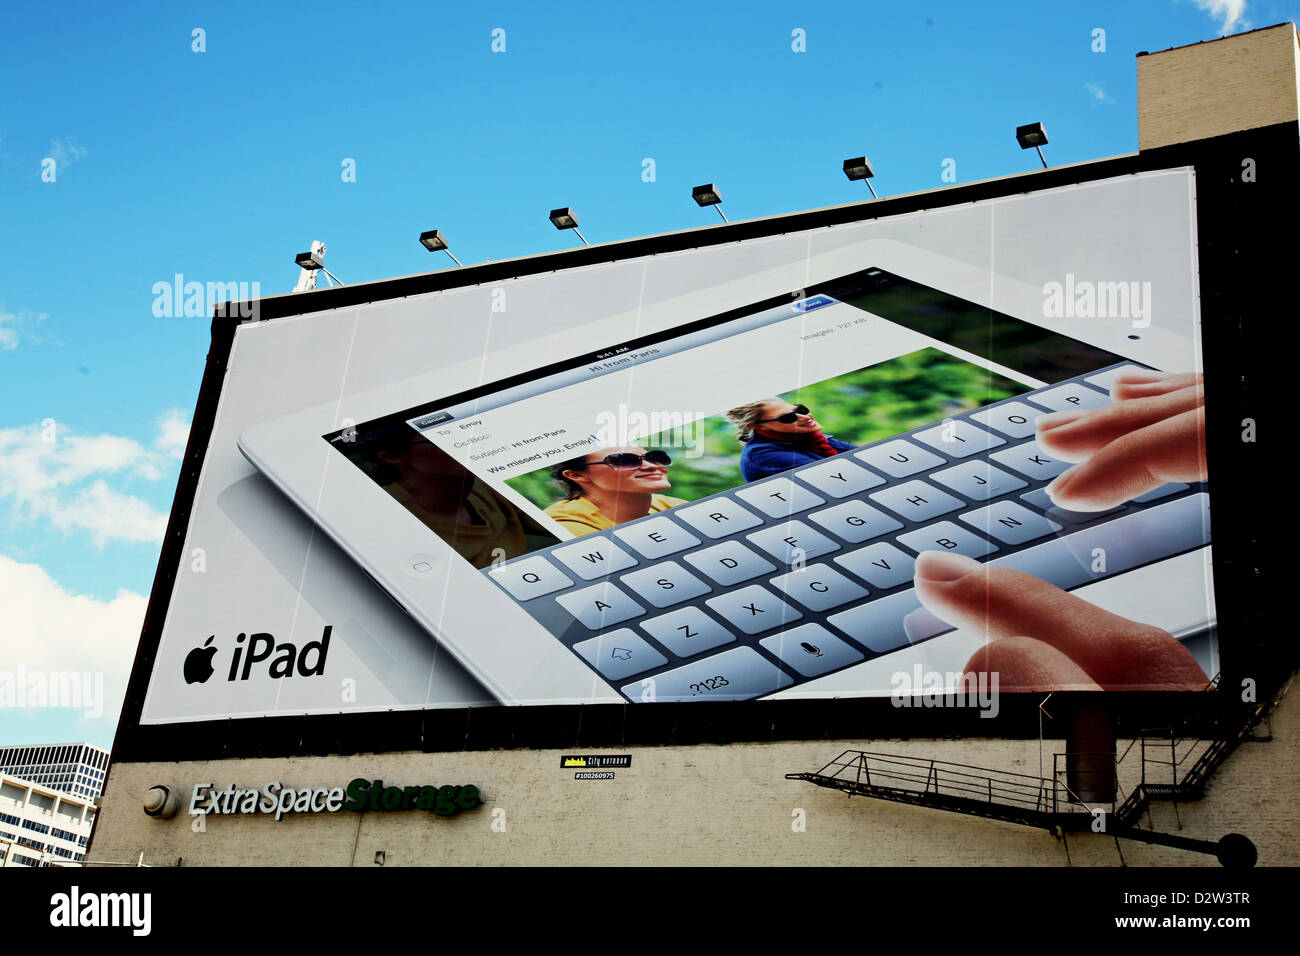 Chicago Billboard I-94 APPLE iPad, Virt Keypad 'ExtraSpaceStorage'  Bldg 'Cityoutdoor100260975' - Stock Image